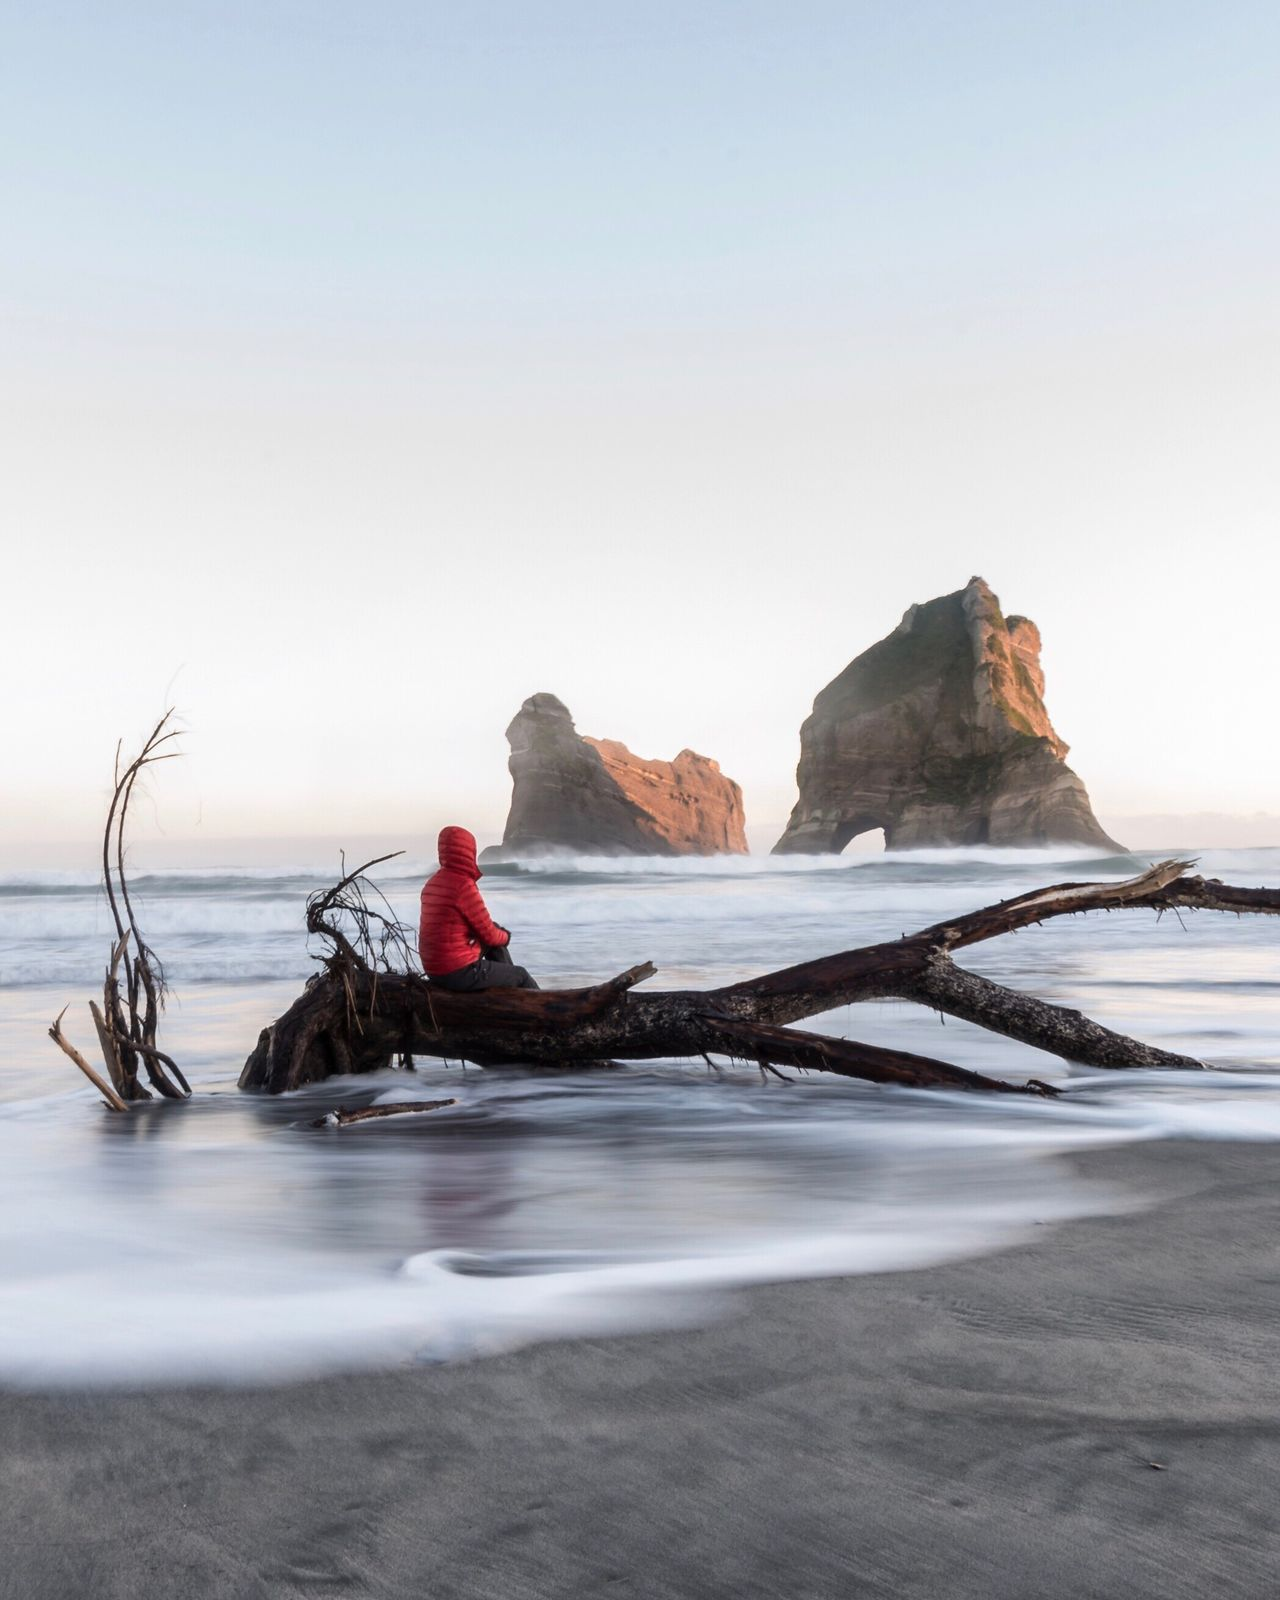 Early morning at Wharariki Beach. What's just out of shot is the rogue wave that got me! Sea Water Beauty In Nature Outdoors Beach Horizon Over Water Tranquility Tranquil Scene Tadaa Community Finding New Frontiers Exceptional Photographs EyeEm Masterclass For My Friends That Connect Amazing_captures Nature_collection New Zealand Scenery Ladyphotographerofthemonth One Woman Only Tranquility Nature On Your Doorstep Real People Sitting Travel Destinations Here Belongs To Me Eye4photography